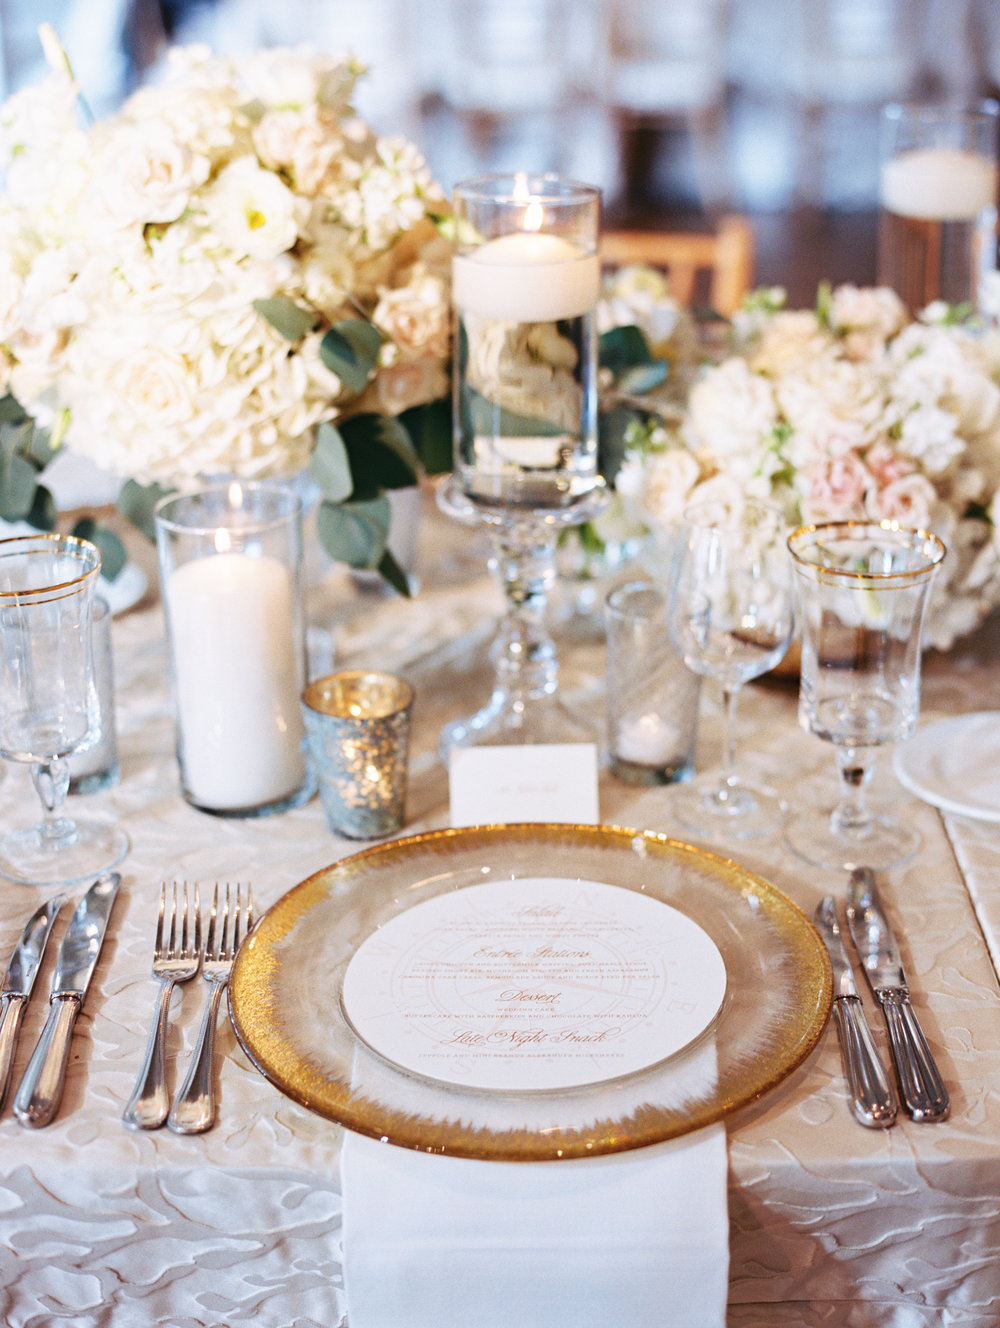 Tabletop Details - Kiawah Island, South Carolina - Fall Wedding - Julian Leaver Events